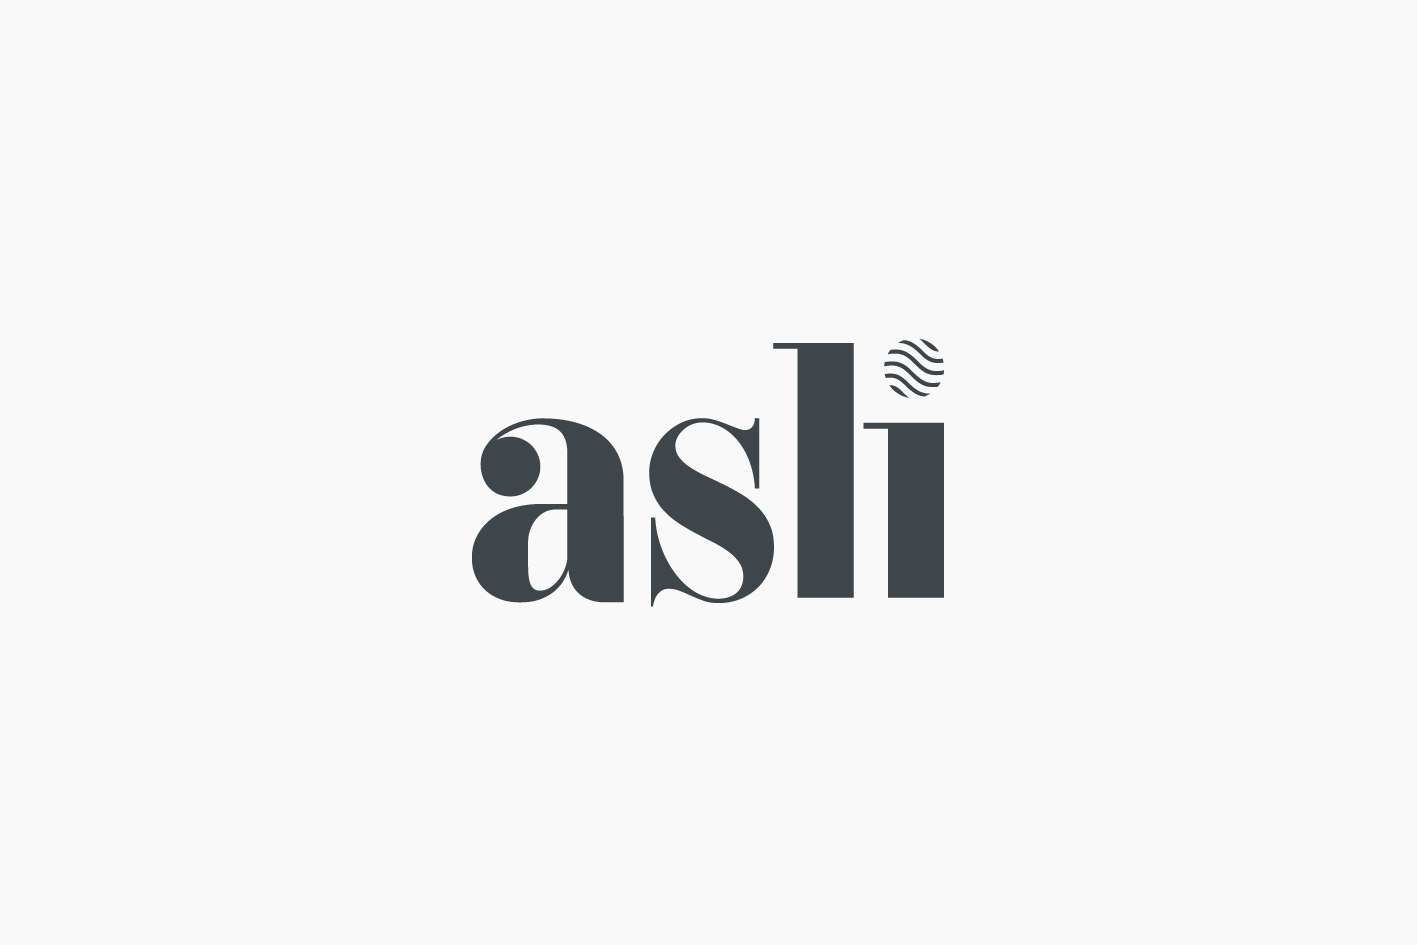 asli Corporate Identity Packaging Design—logo